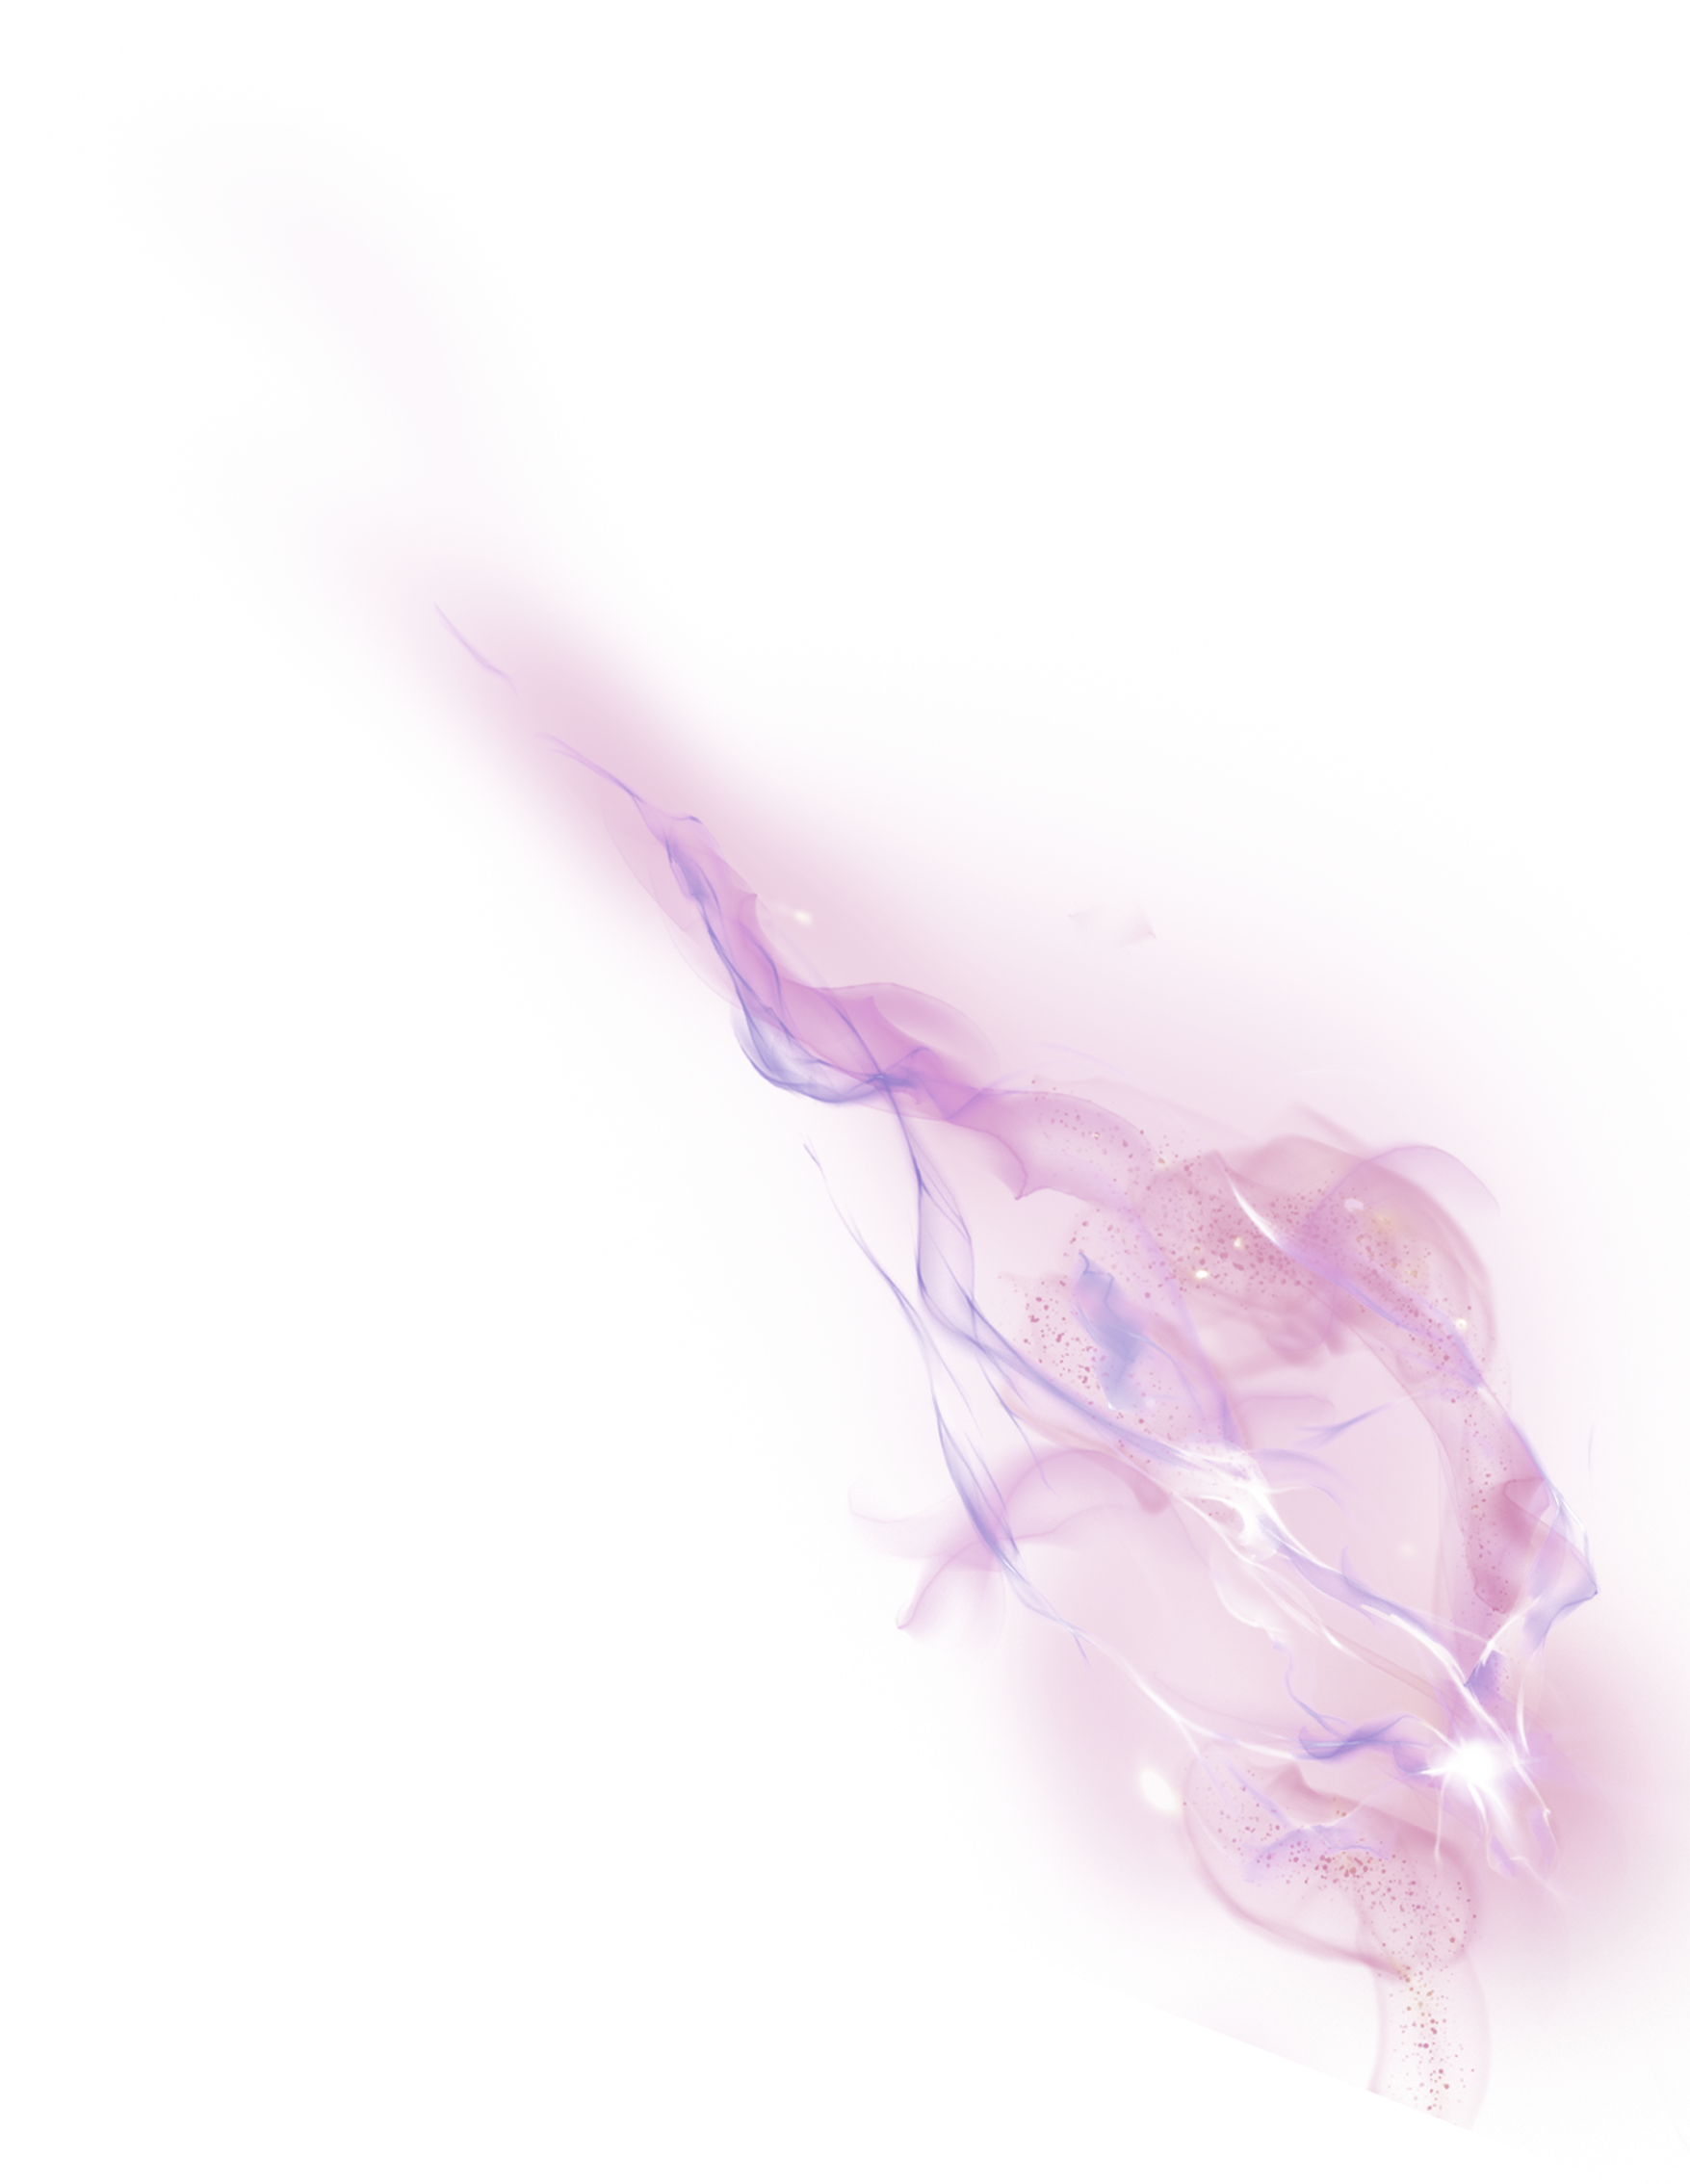 Pink flame effect pinterest. Smoke effects png